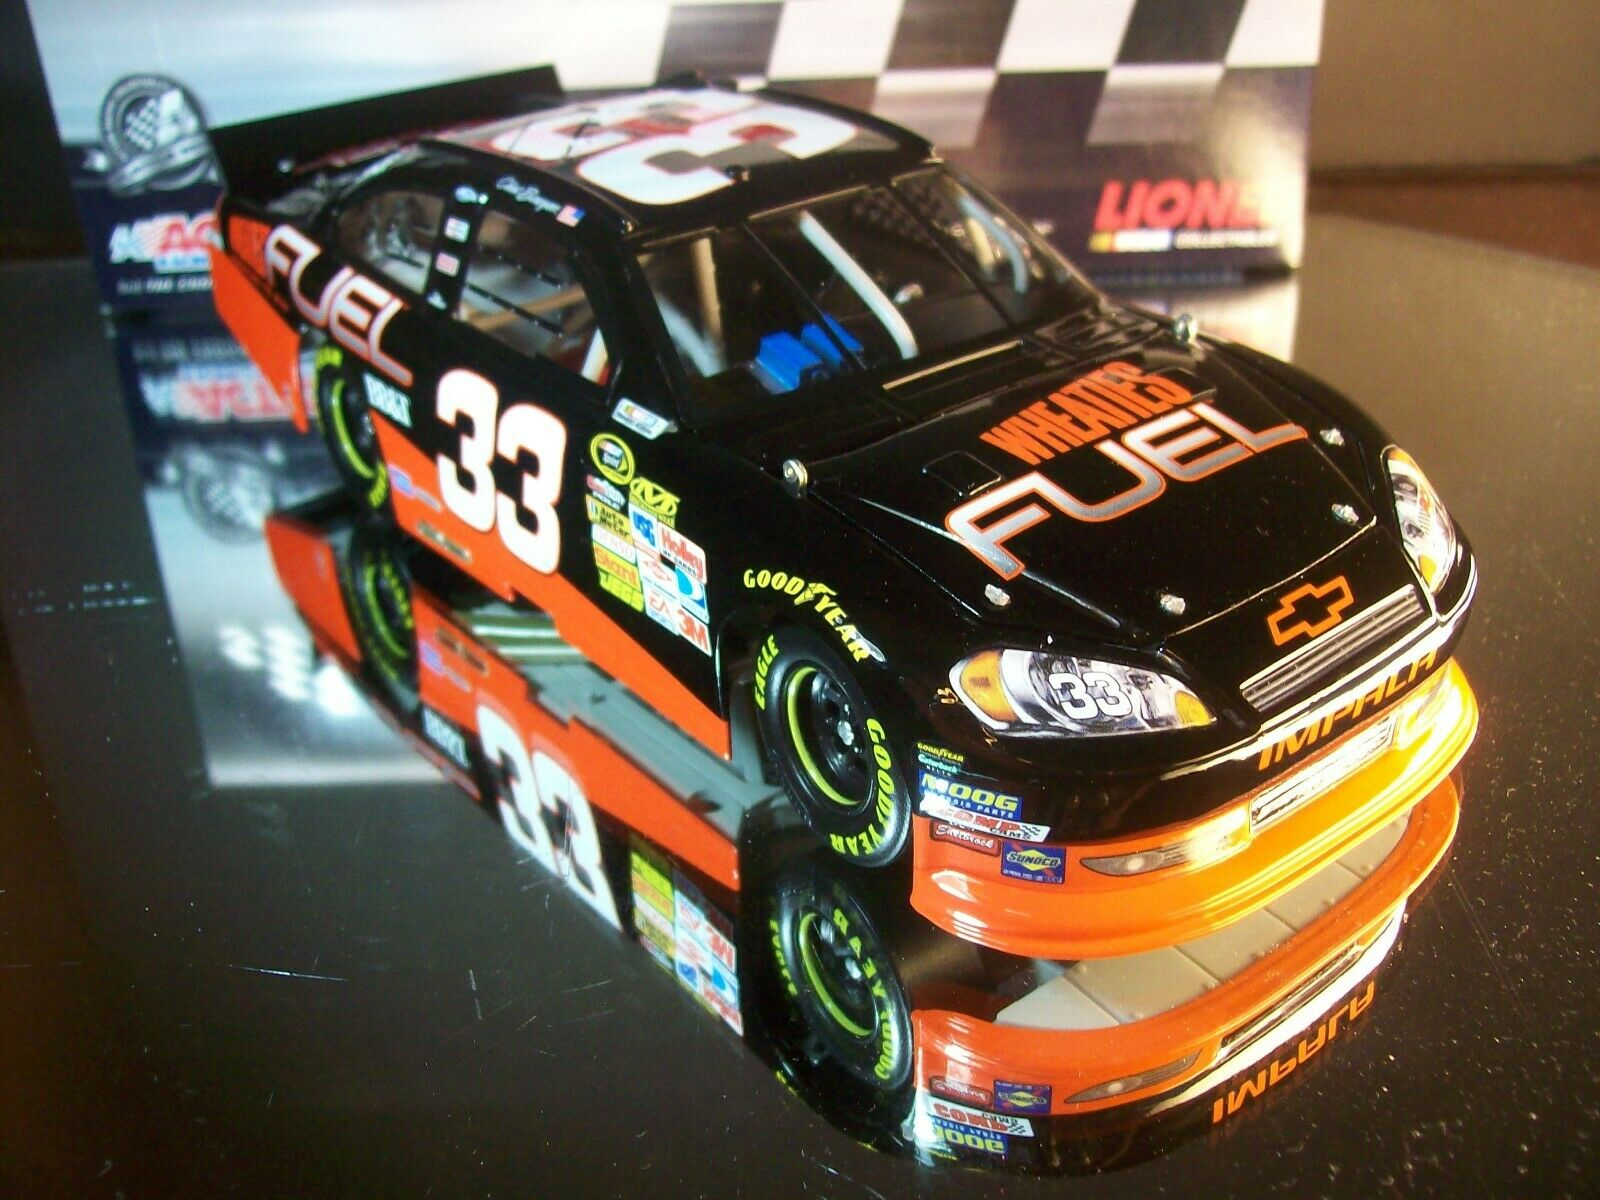 Clint Bowyer Wheaties Fuel Fuel Fuel 2011 Chevrolet Impala 1 25 Lionel 1 of 742 f1bf49